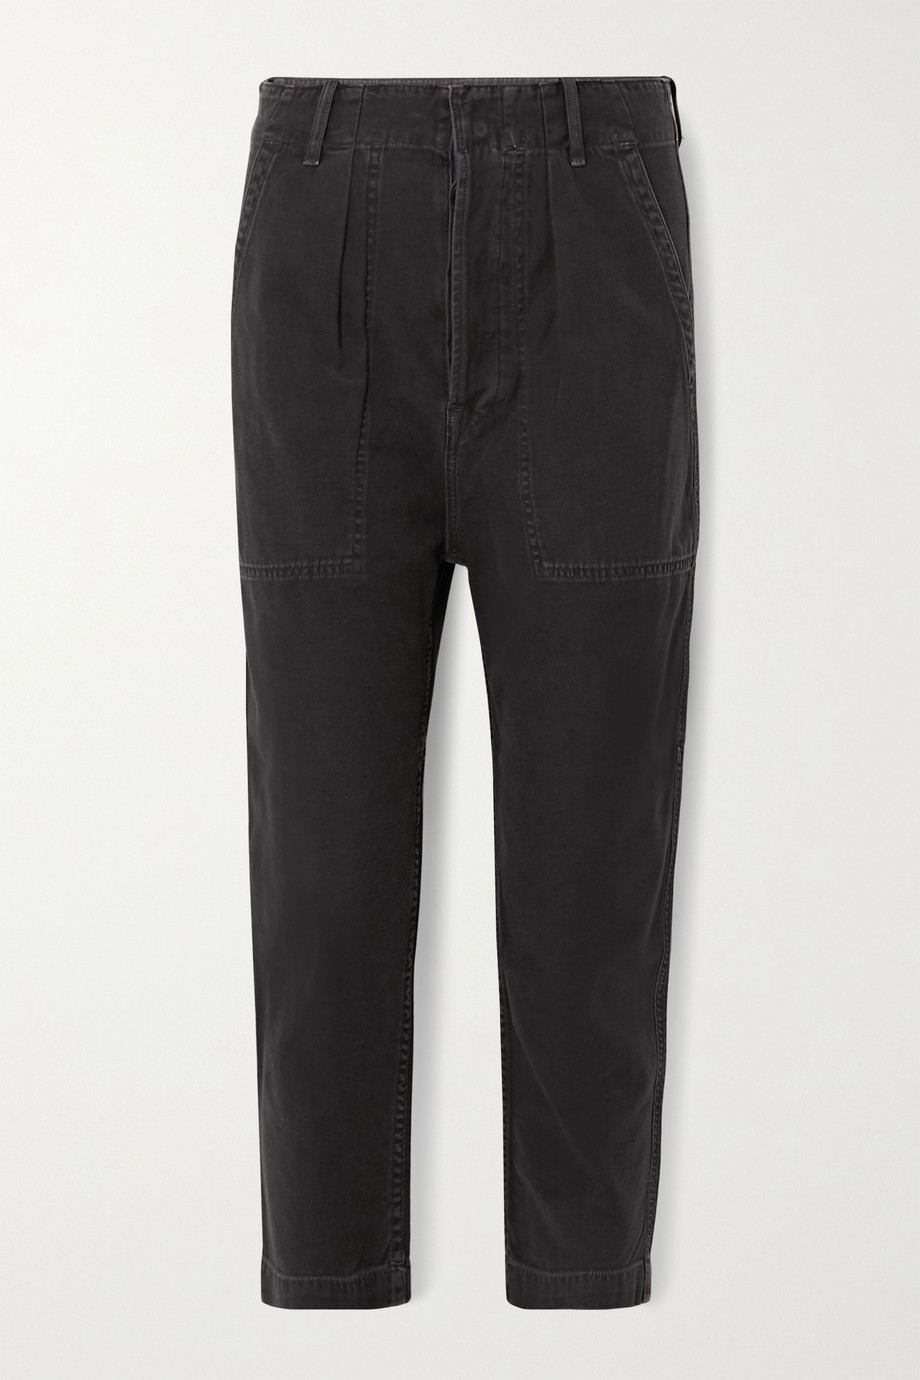 Citizens of Humanity Harrison denim tapered pants